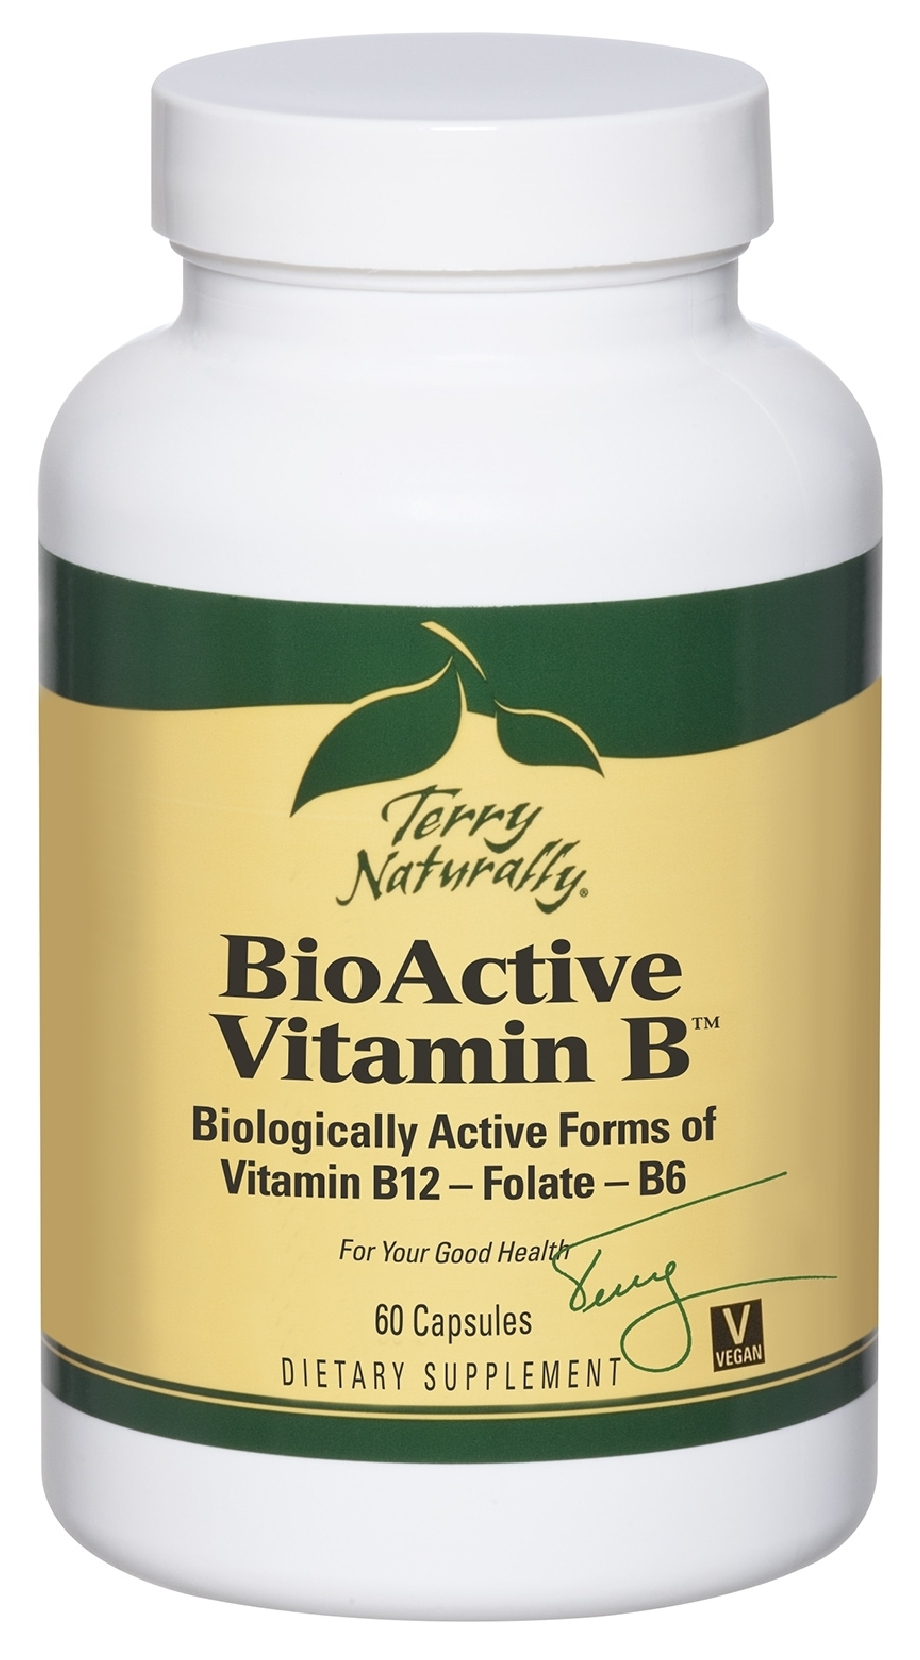 Terry Naturally BioActive Vitamin B 60 caps by EuroPharma